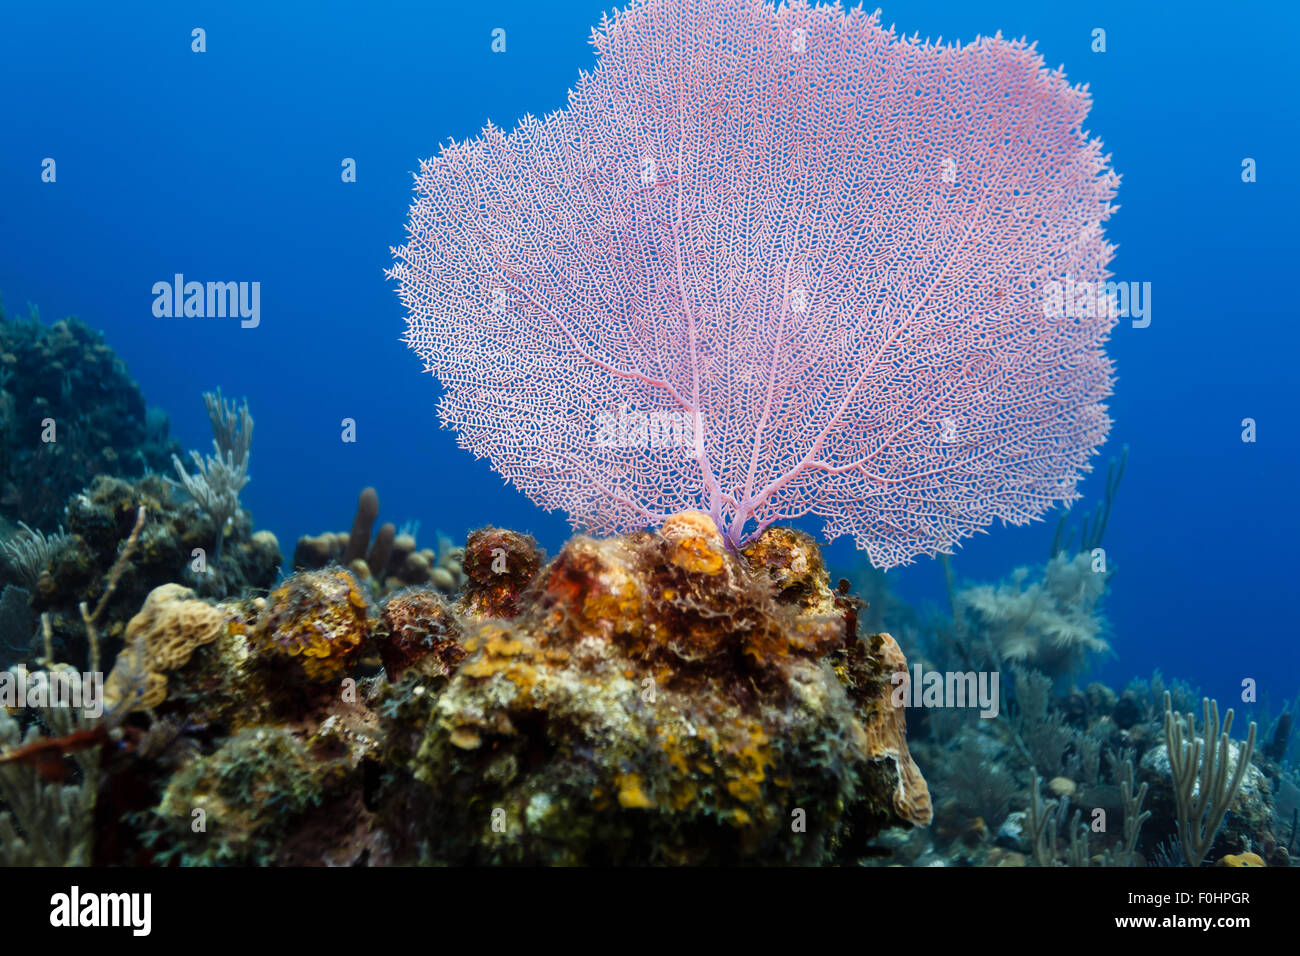 Close up detail of purple Gorginian sea fan, Gorgonia flabellum, on coral reef - Stock Image